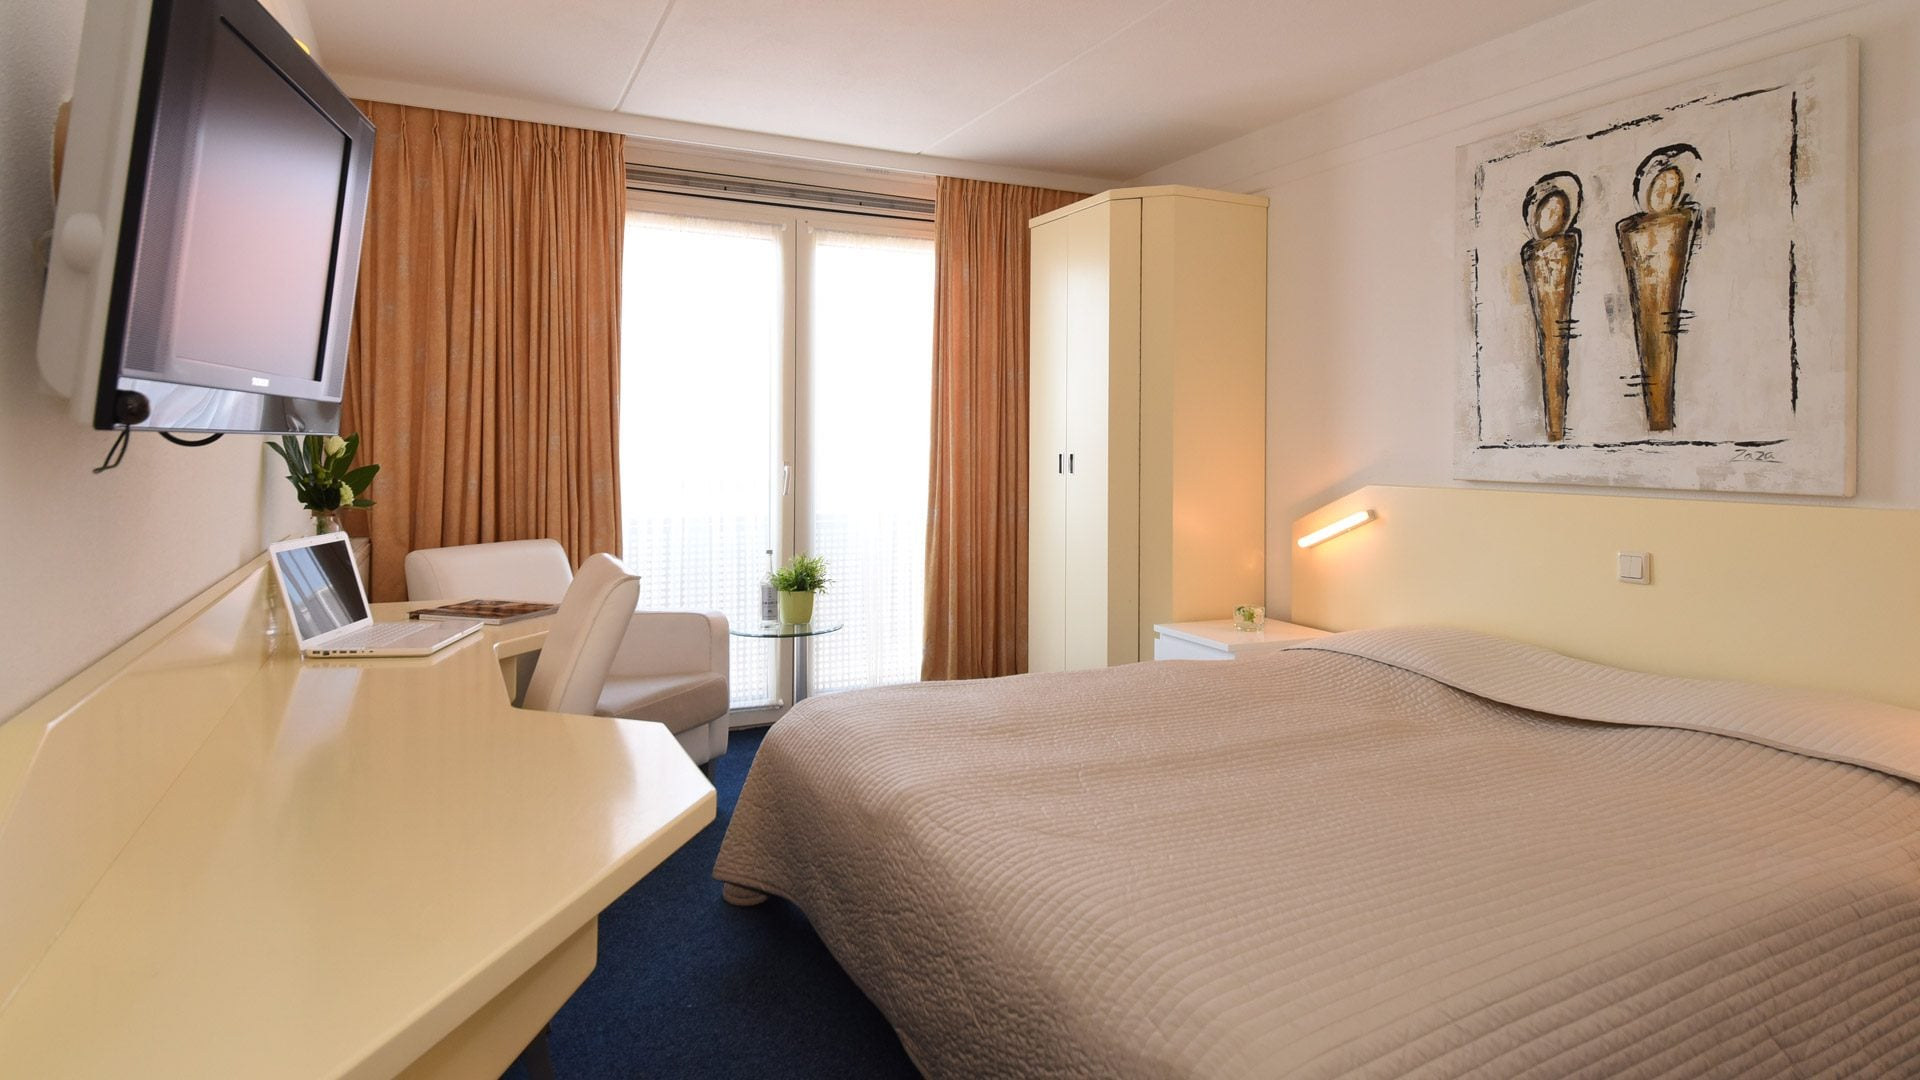 Rooms - Hotel Nehalennia